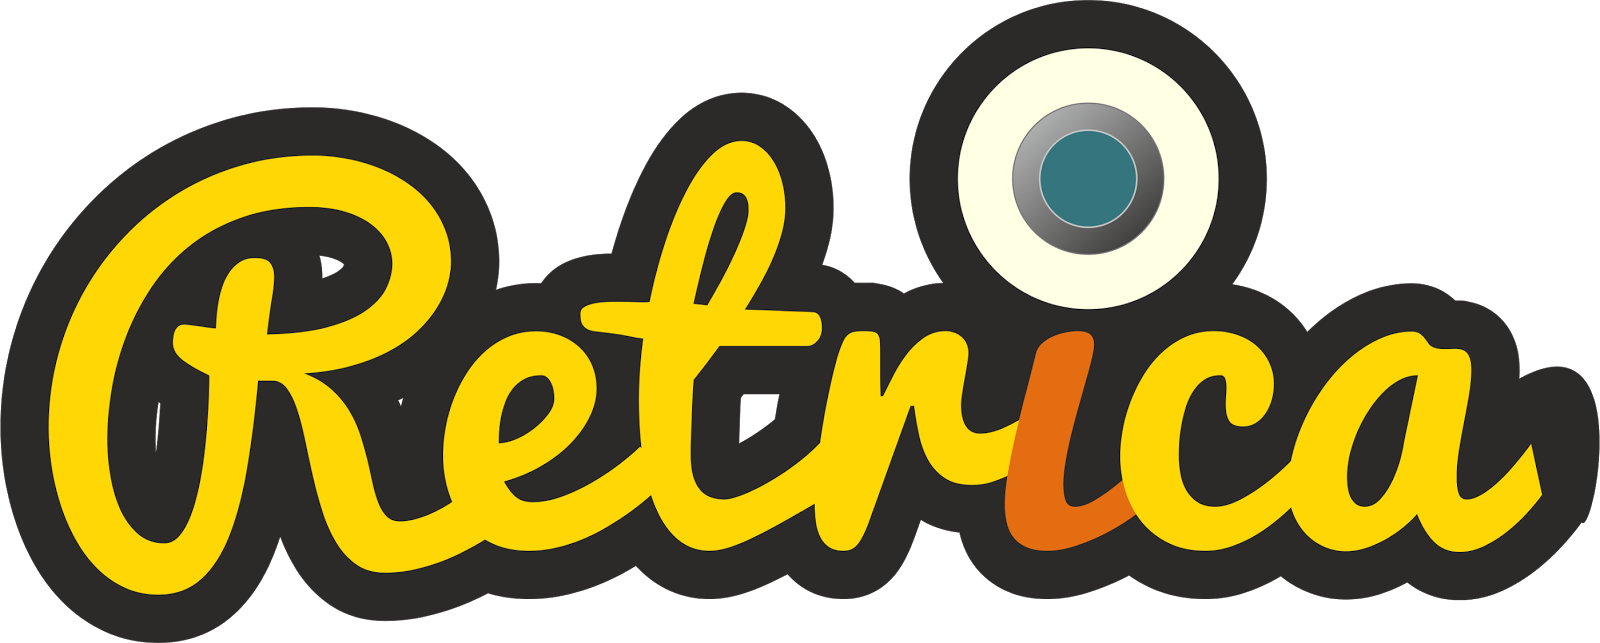 Retrica Selfie Camera Logo Icon image #40102